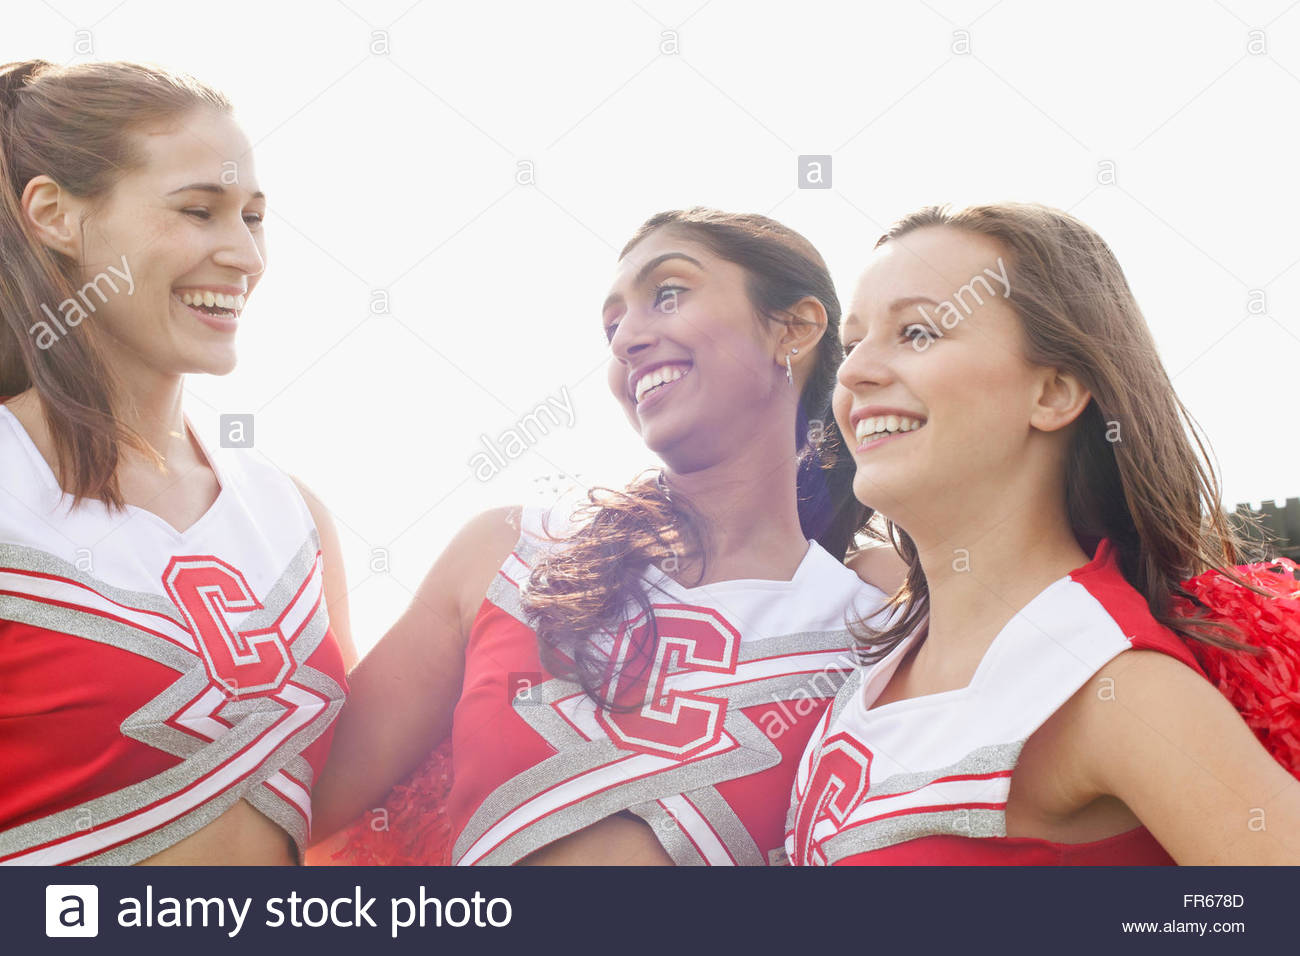 cheerleaders practicing - Stock Image